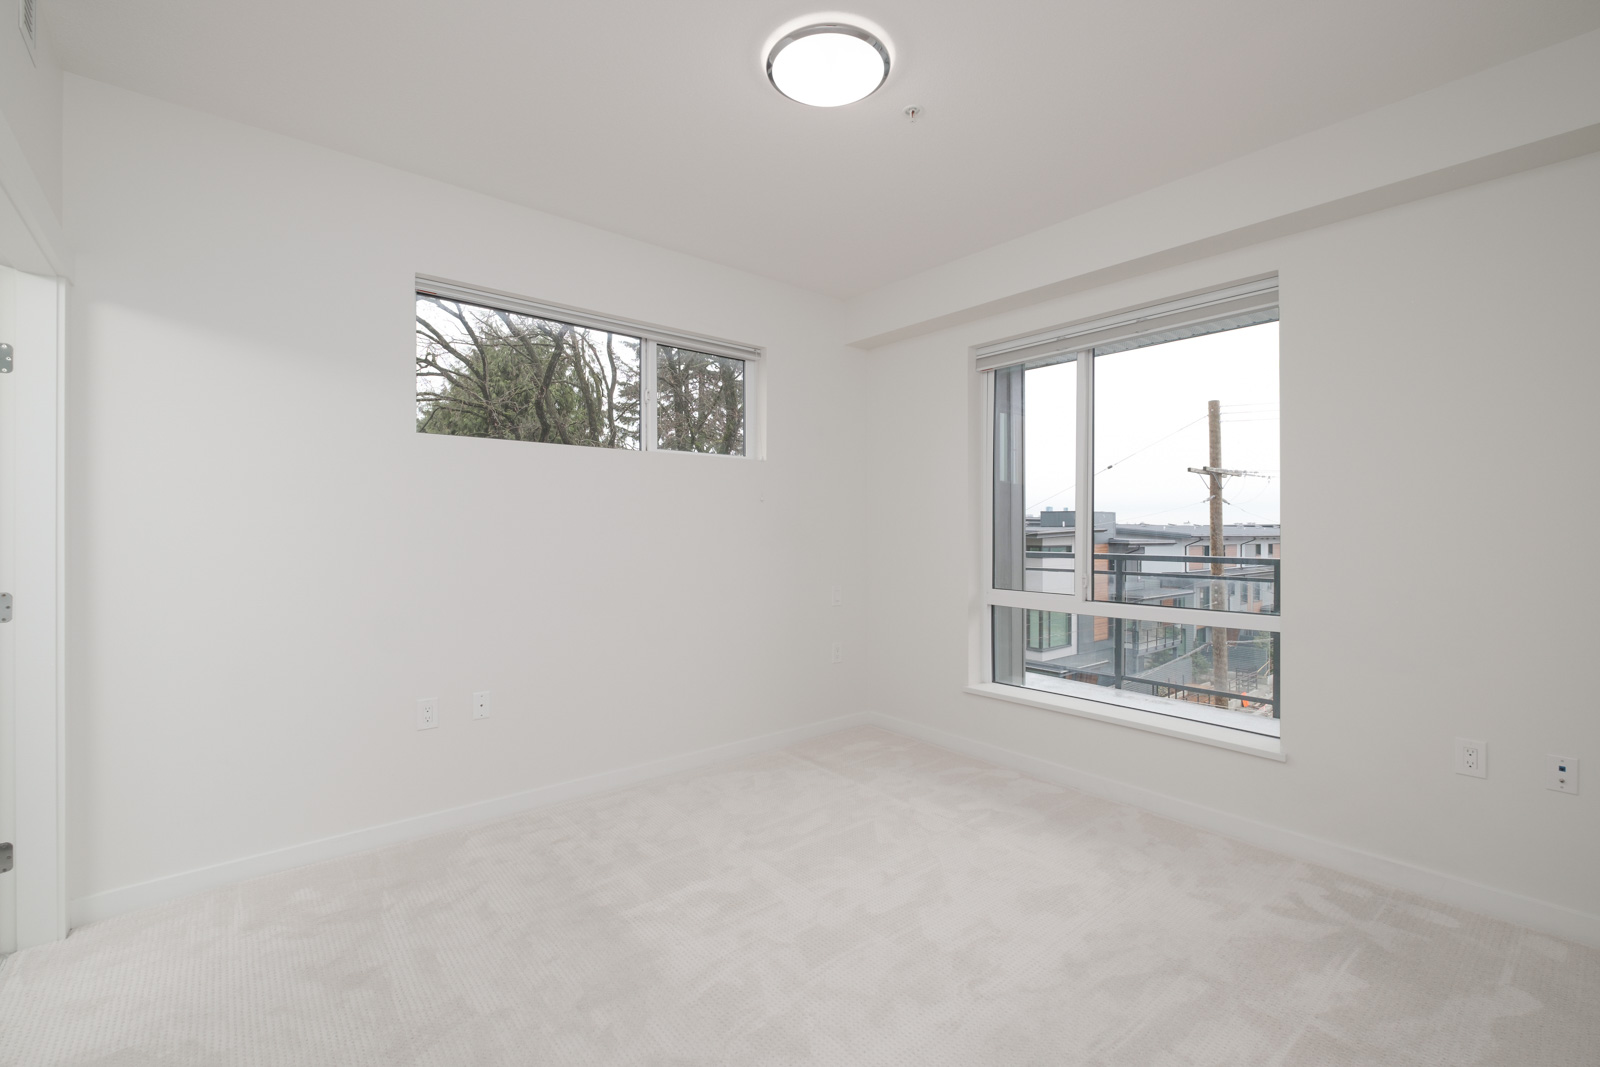 bedroom with white walls and window in rental condo in the Lonsdale neighbourhood of North Vancouver